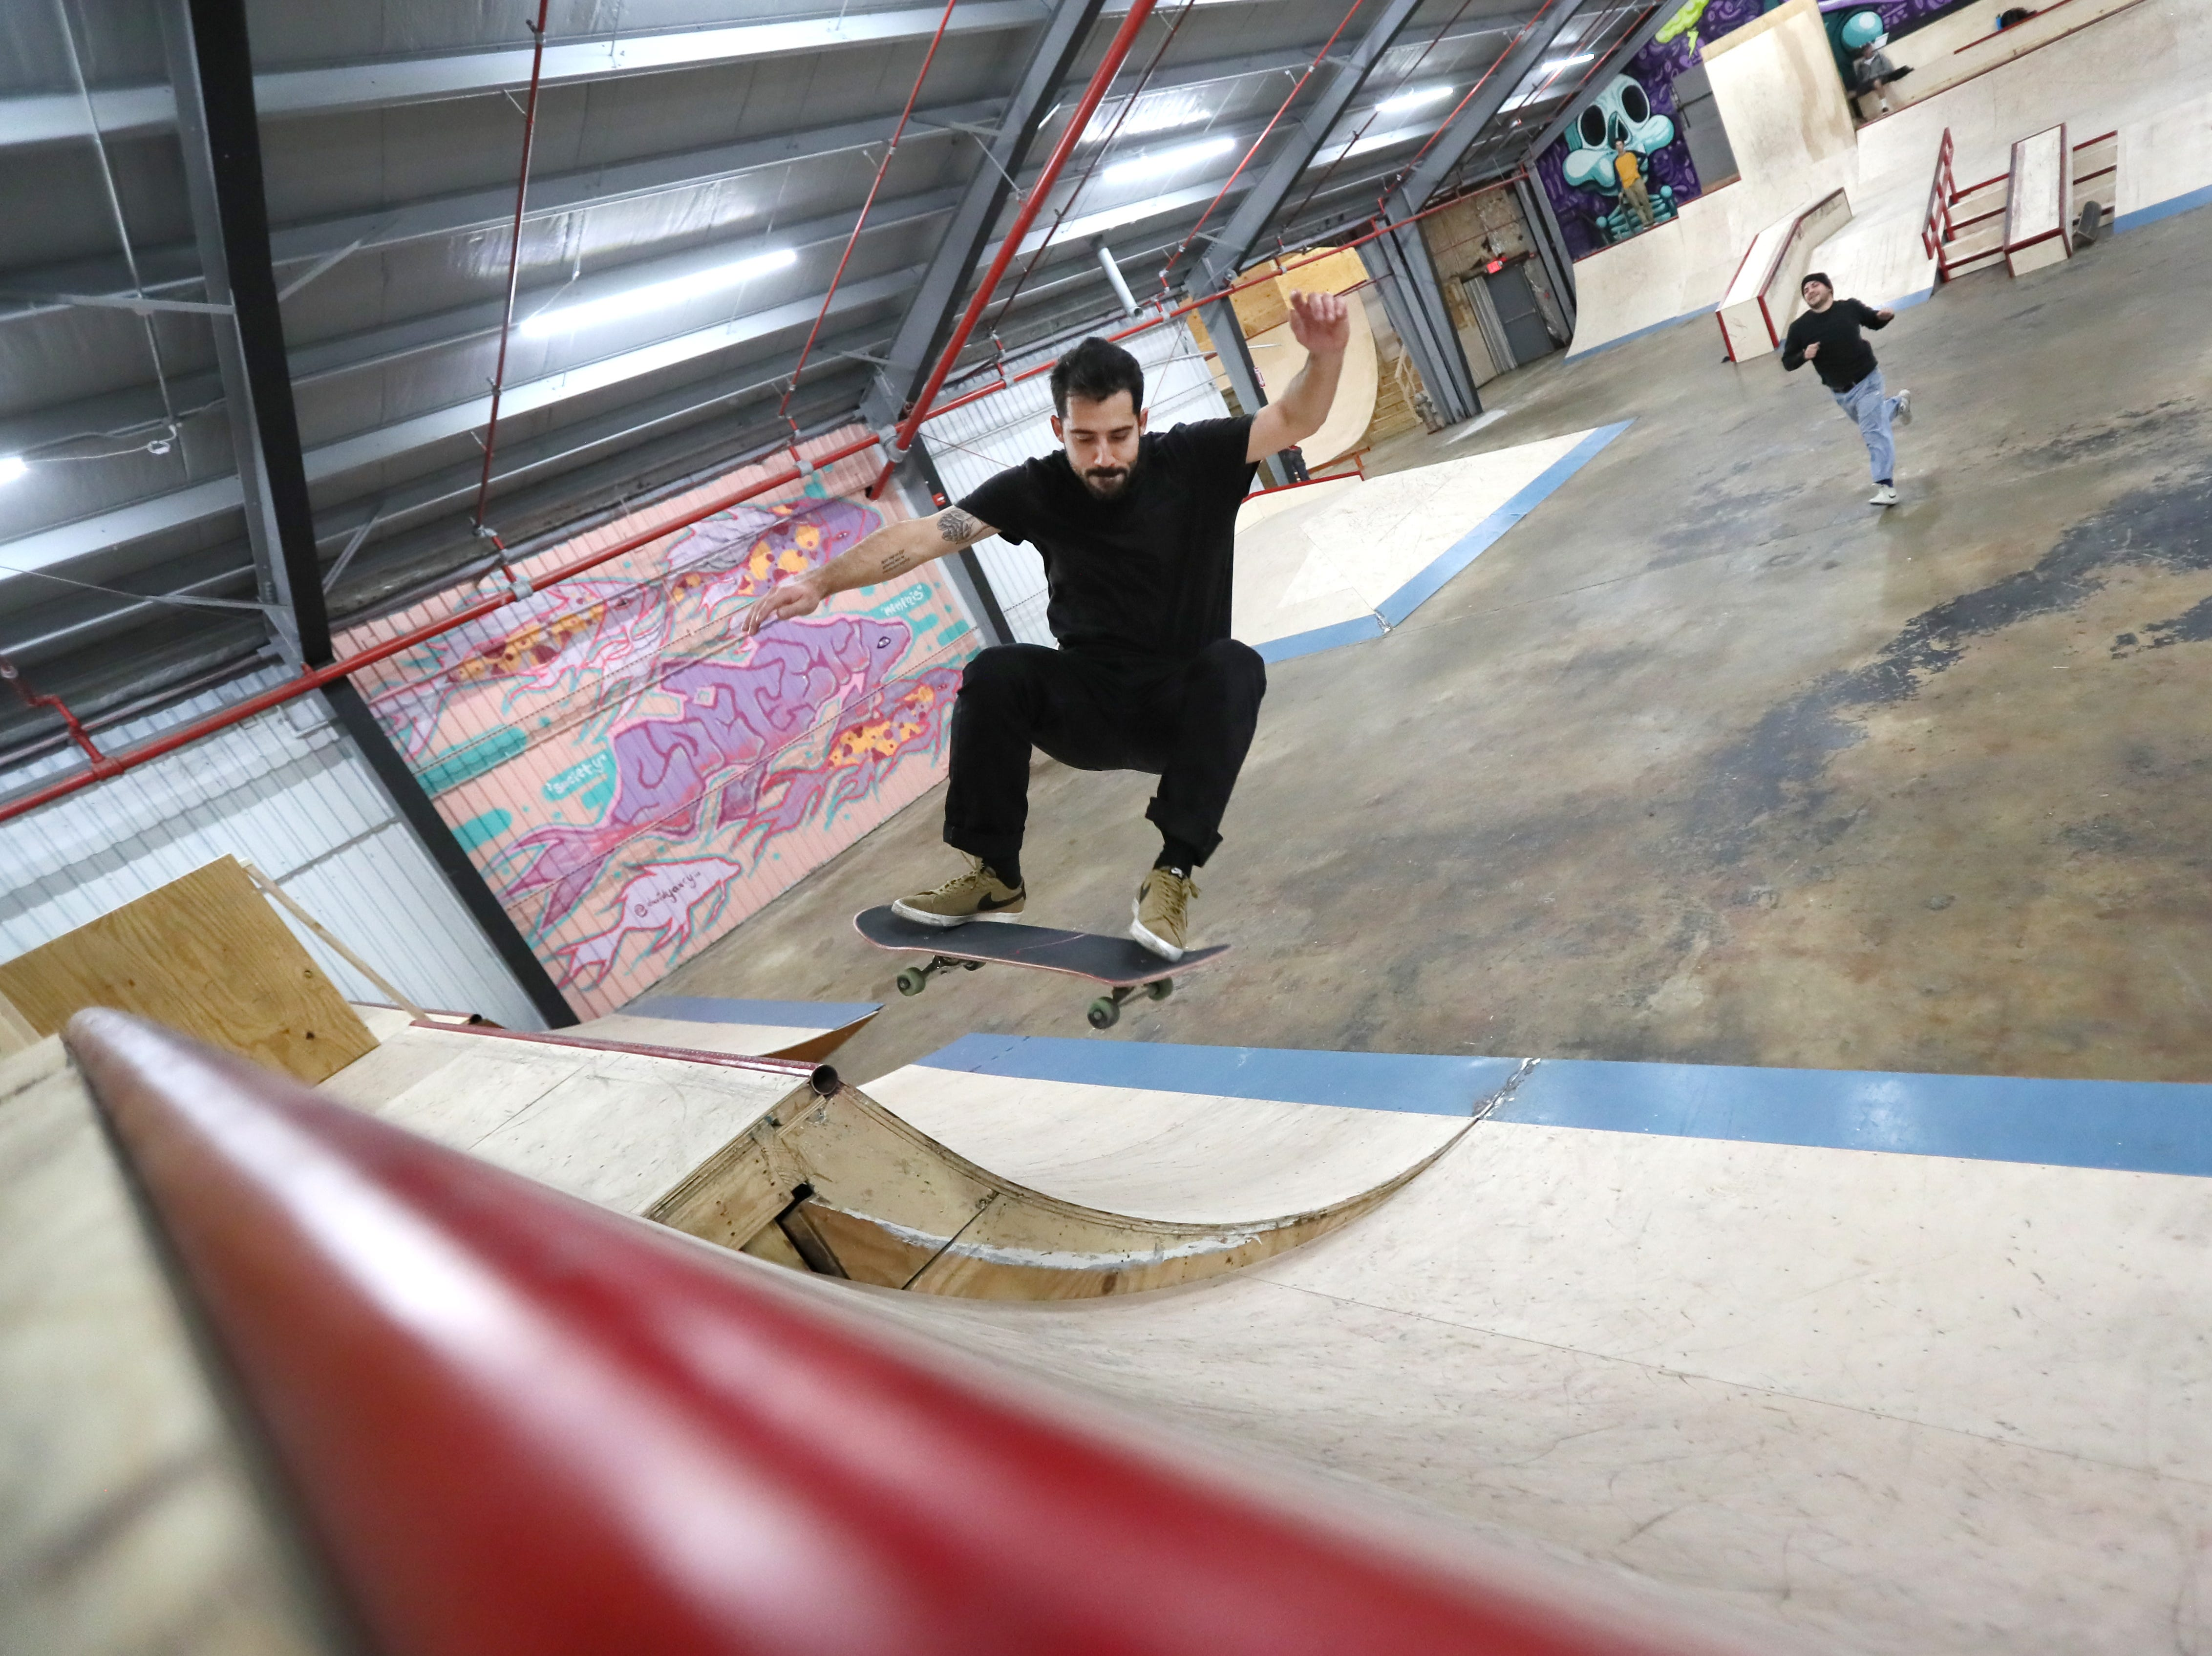 Richard Dalton, 29, rides inside Society Skatepark, a joint venture with Contact Skateboard Shop in the Broad Avenue Arts District which held its soft opening on Thursday, Dec. 20, 2018.